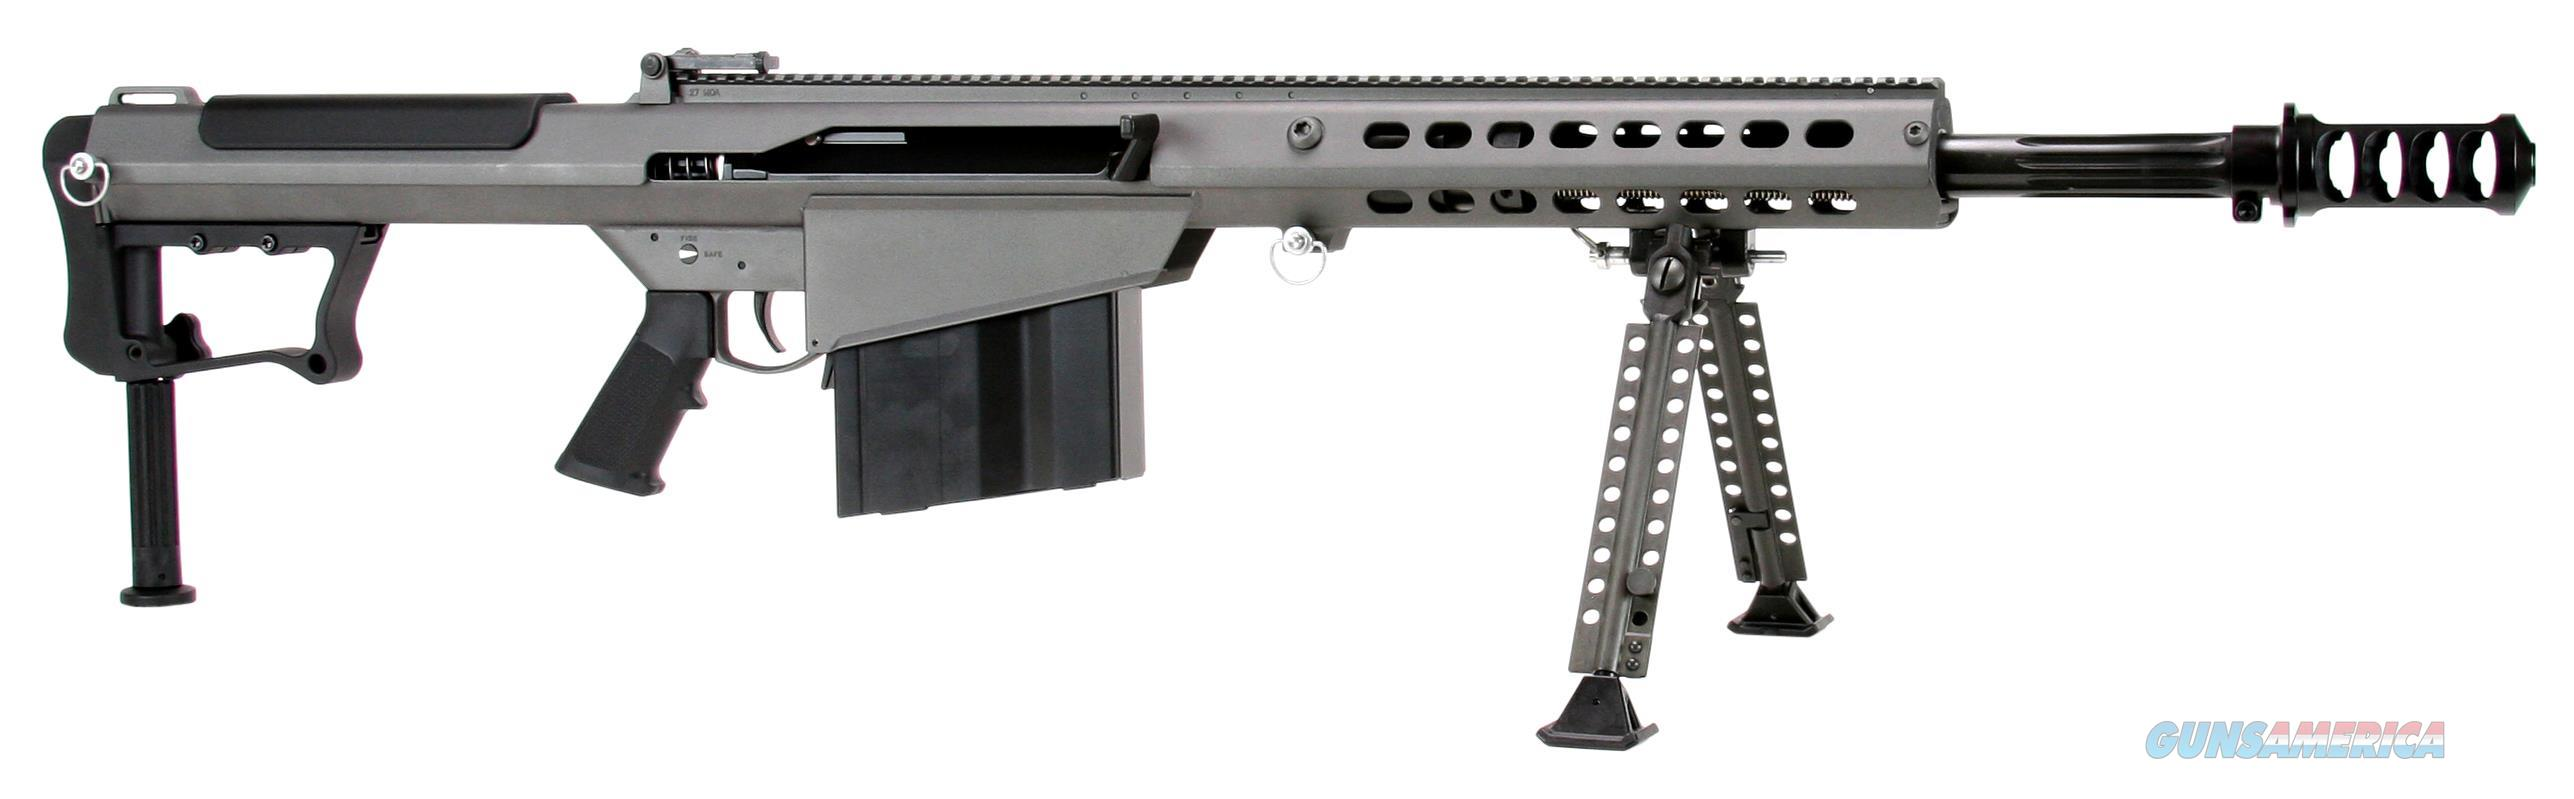 "Barrett 14552 M107 A1 Semi-Automatic 50 Browning Machine Gun (Bmg) 20"" 10+1 Fixed Metal Gray Stk Gray Cerakote/Black Parkerized 14552  Guns > Rifles > B Misc Rifles"